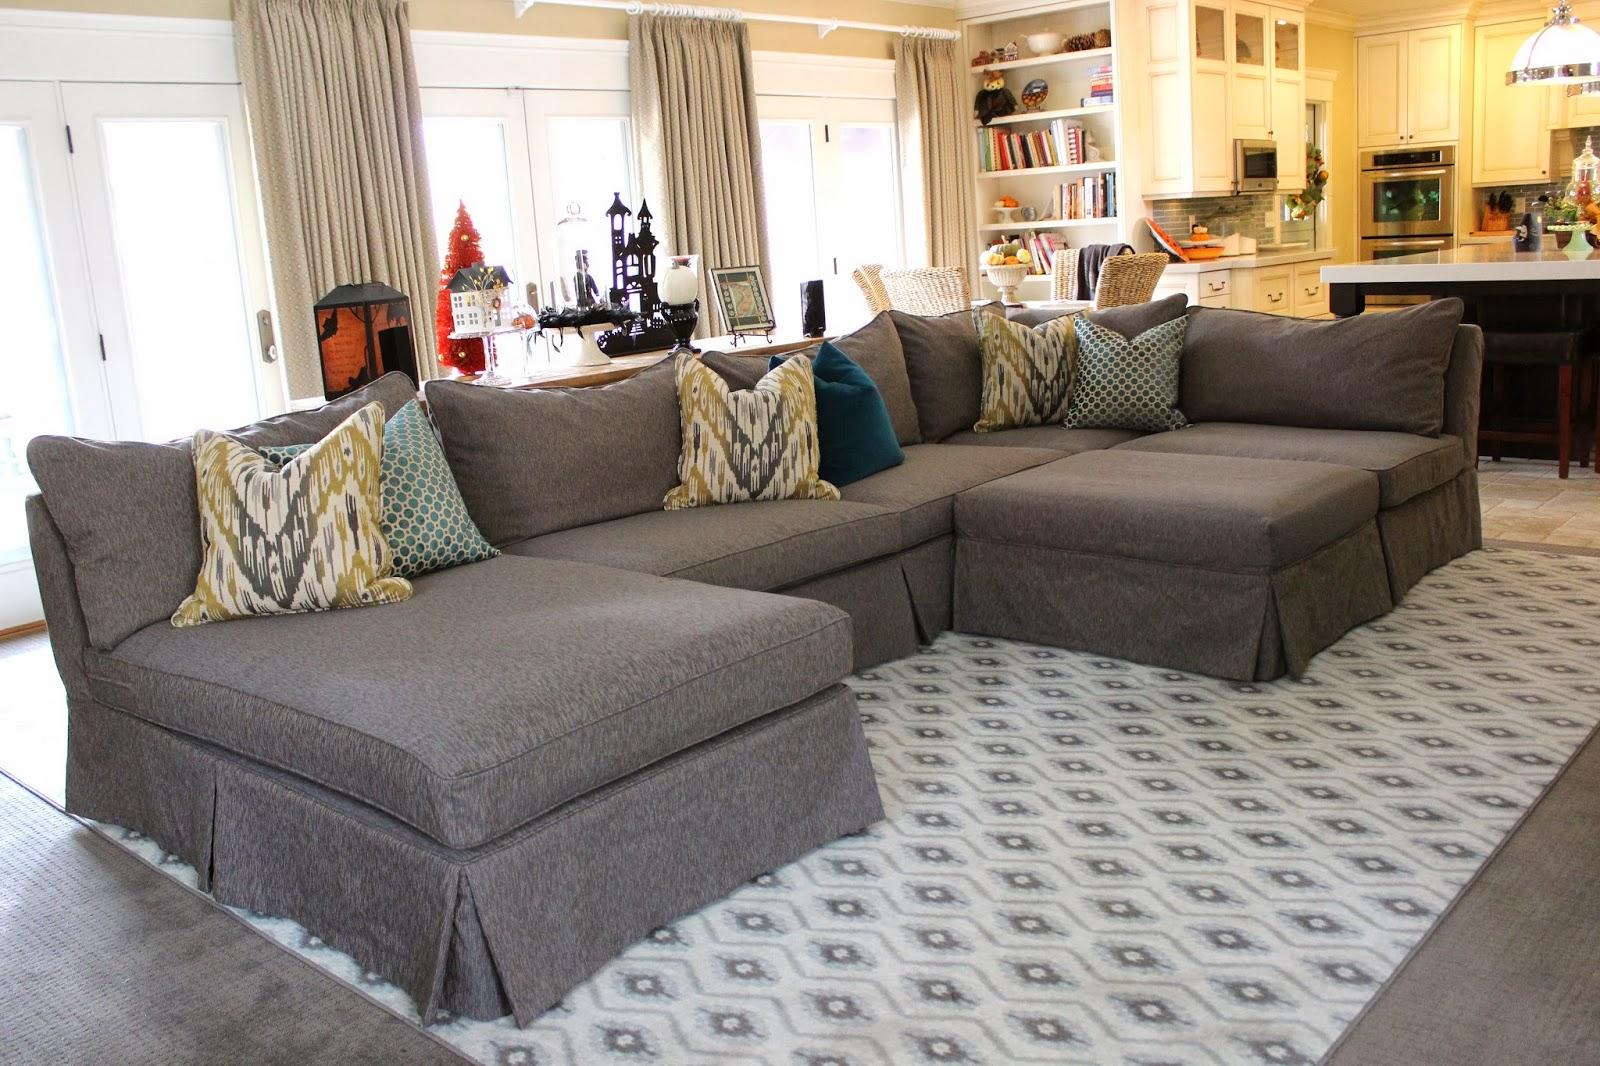 design new making for amazing simple couches with slipcovers furniture slipcover home